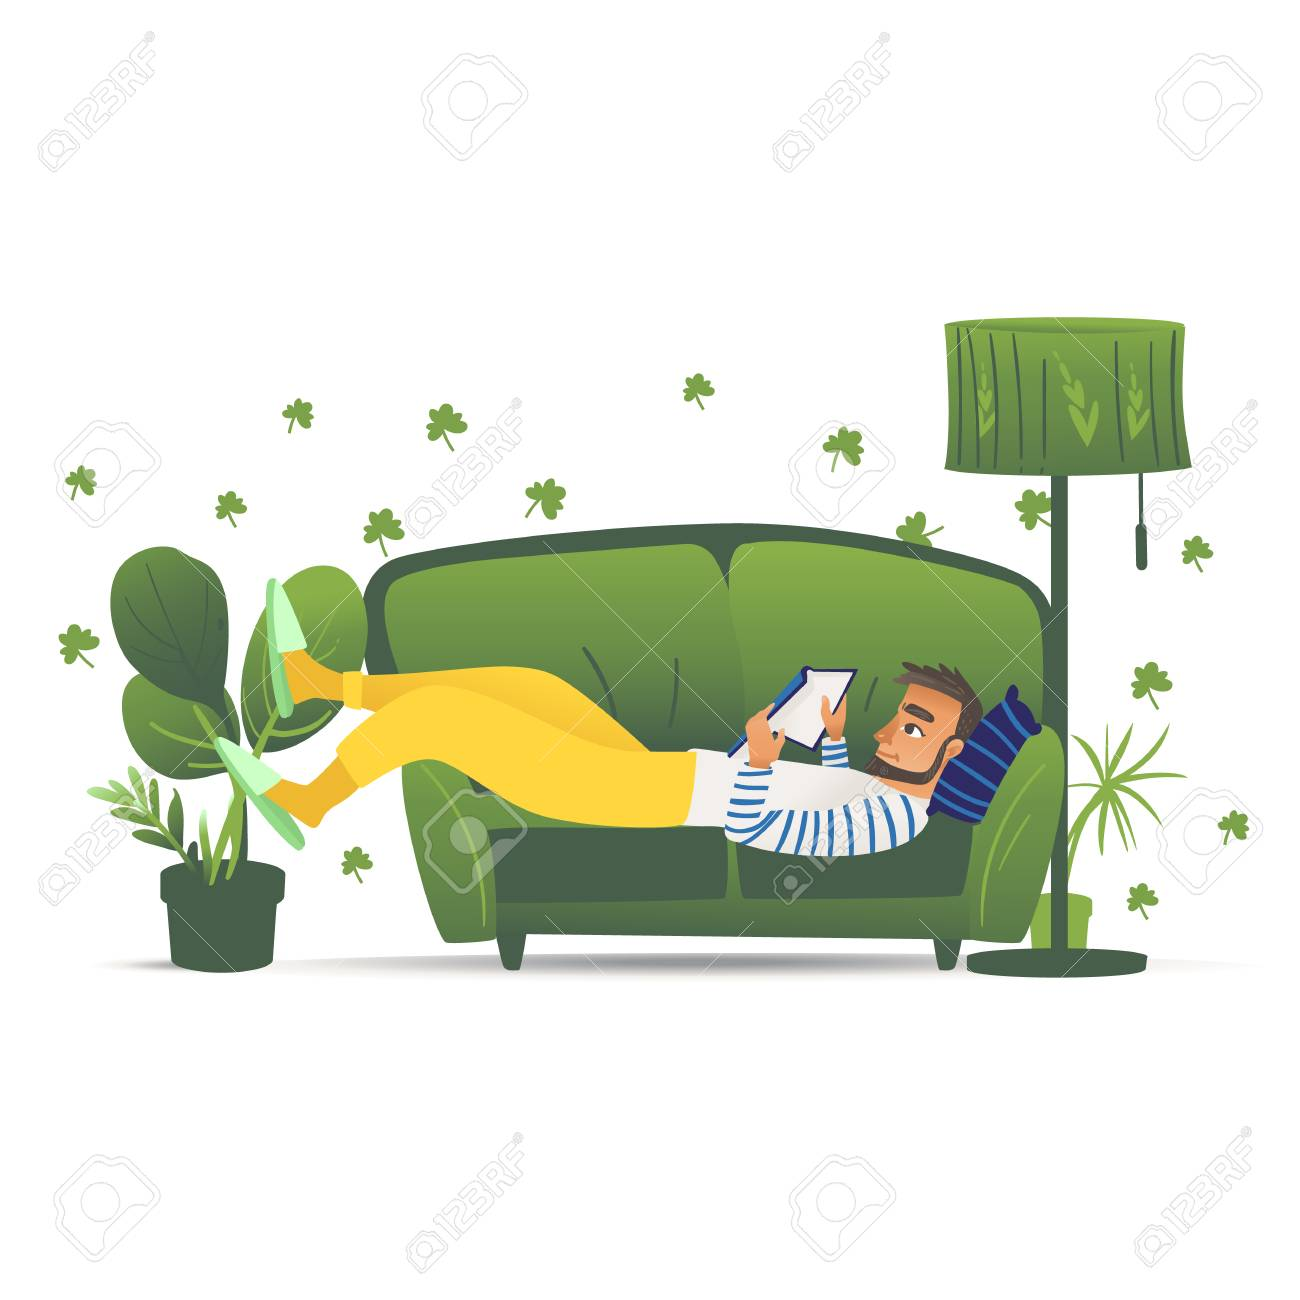 Man lying on green sofa, young male adult relaxing and reading a book at home on a comfortable sofa, leisure lifestyle vector illustration hand drawn and isolated on white background - 128170451